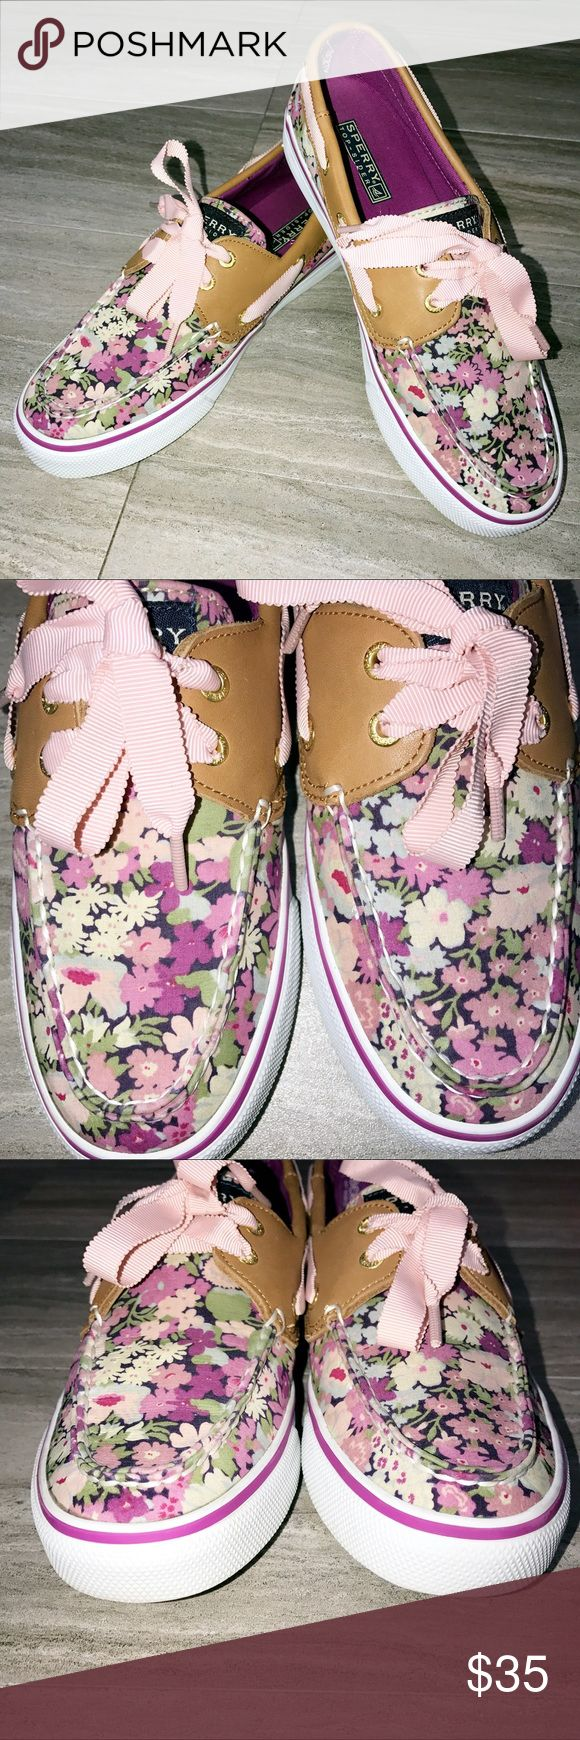 Sperry 🌸Floral Liberty Art Topsider Sperry floral print Liberty Art topsiders. Purple and pink floral print, tan leather and white trim, and light pink ribbon laces. Very clean and good condition! Minimal wear inside and out. 🌸 Sperry Top-Sider Shoes Sneakers